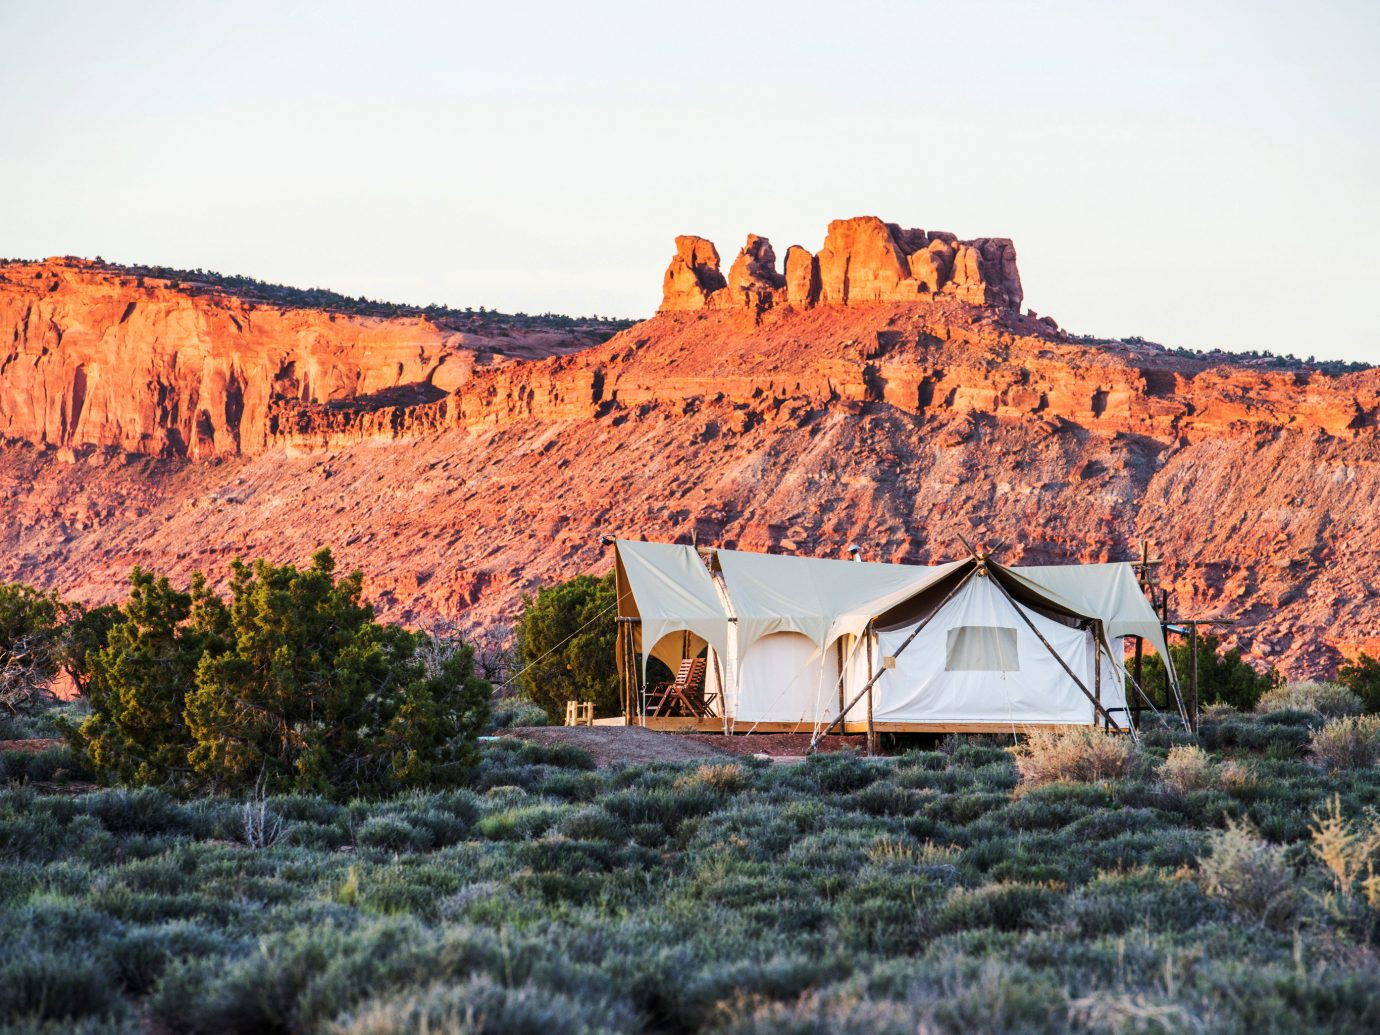 Glamping Luxury Travel Outdoors + Adventure sky outdoor mountain grass canyon valley mountainous landforms wilderness geographical feature natural environment Nature rock season landscape autumn rural area orange plateau mountain range cliff geology national park terrain